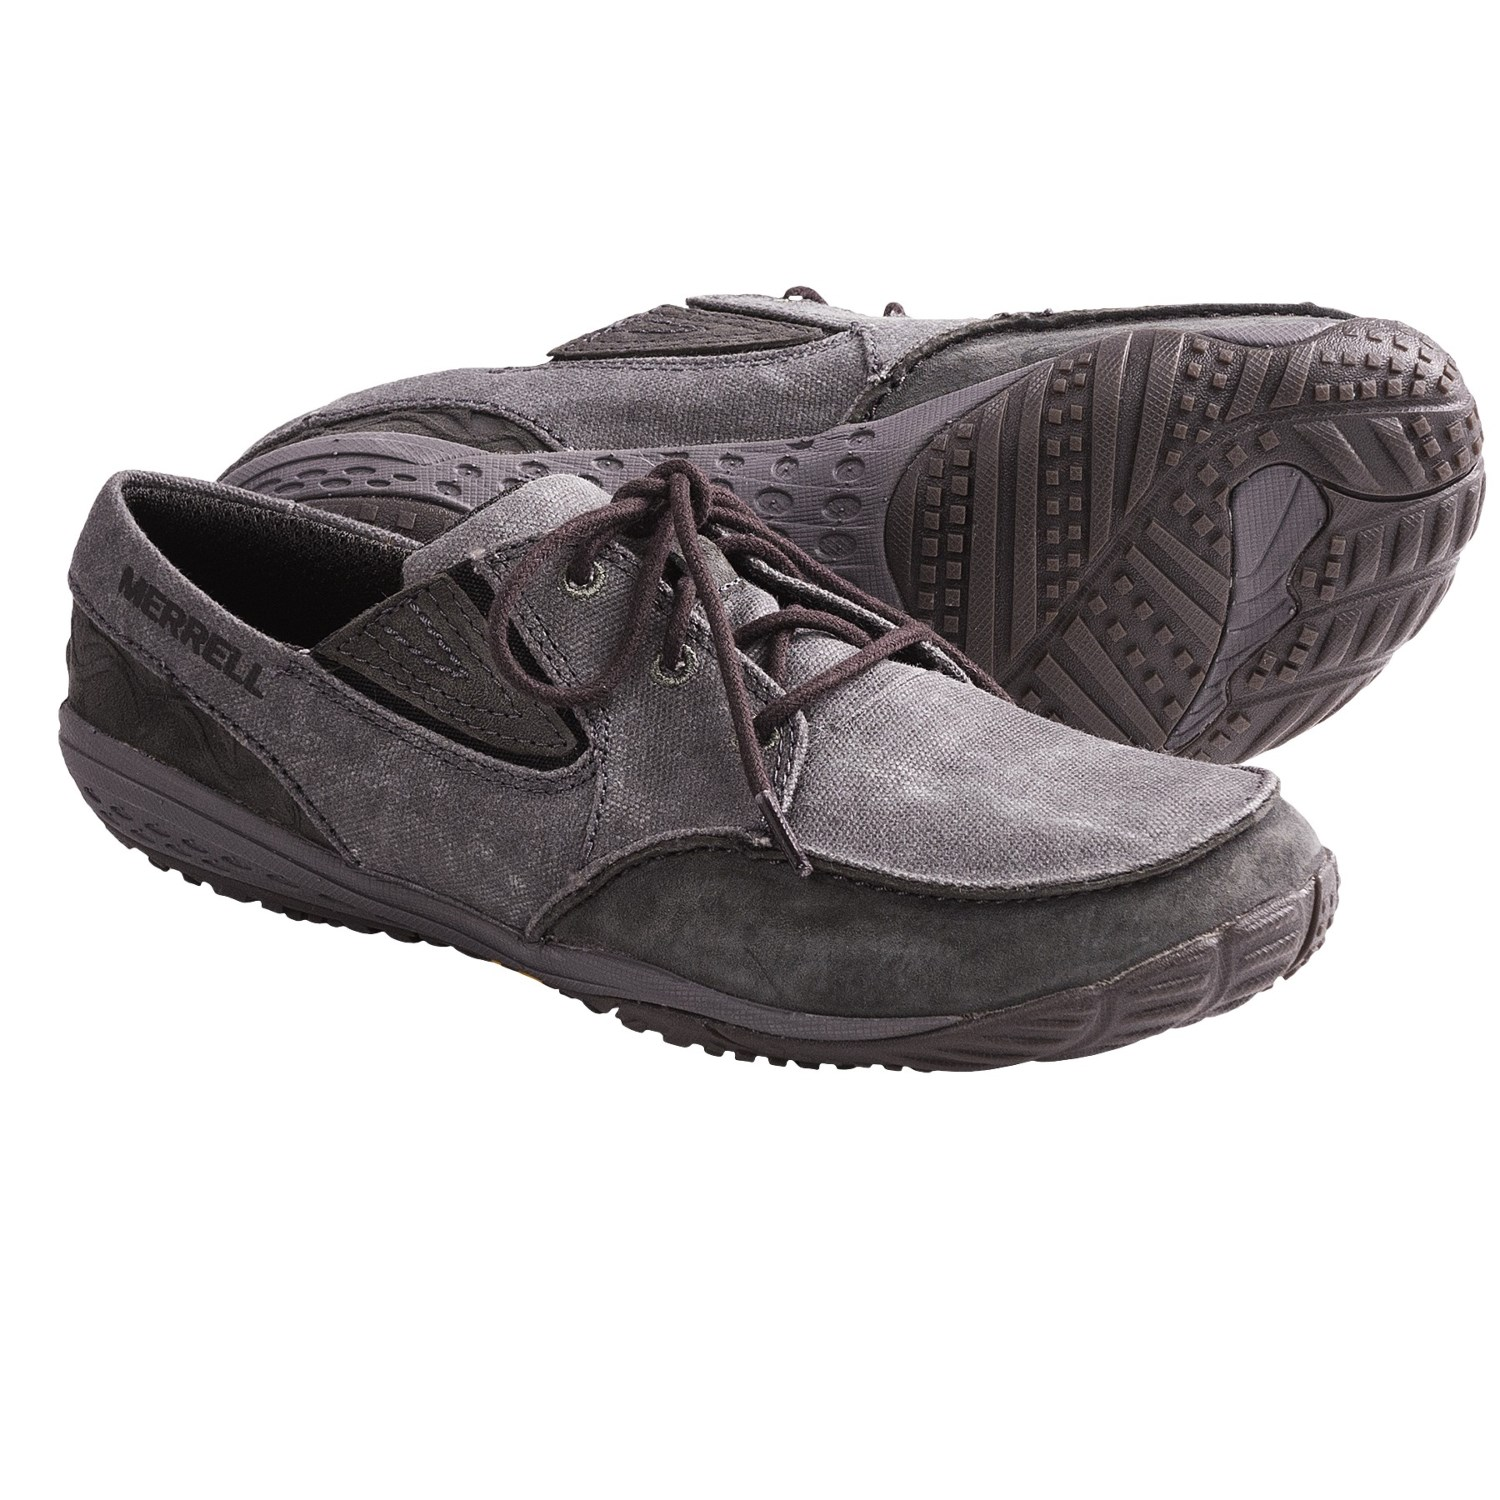 Barefoot Shoes Merrell Review